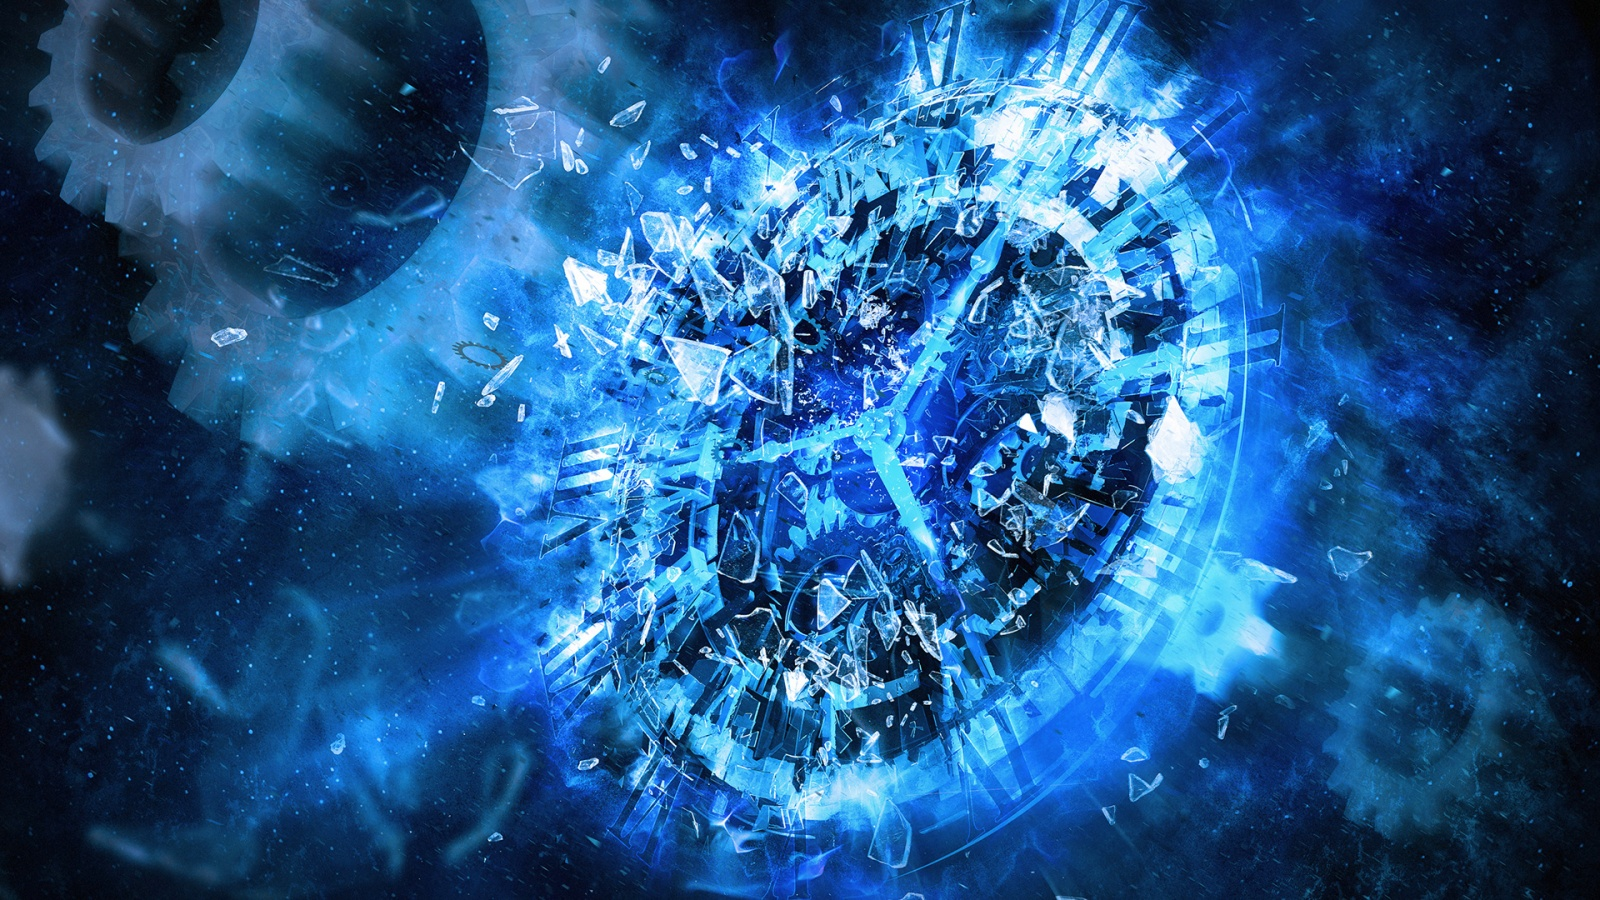 Free Download Cool Blue Abstract Wallpapers 1600x900 For Your